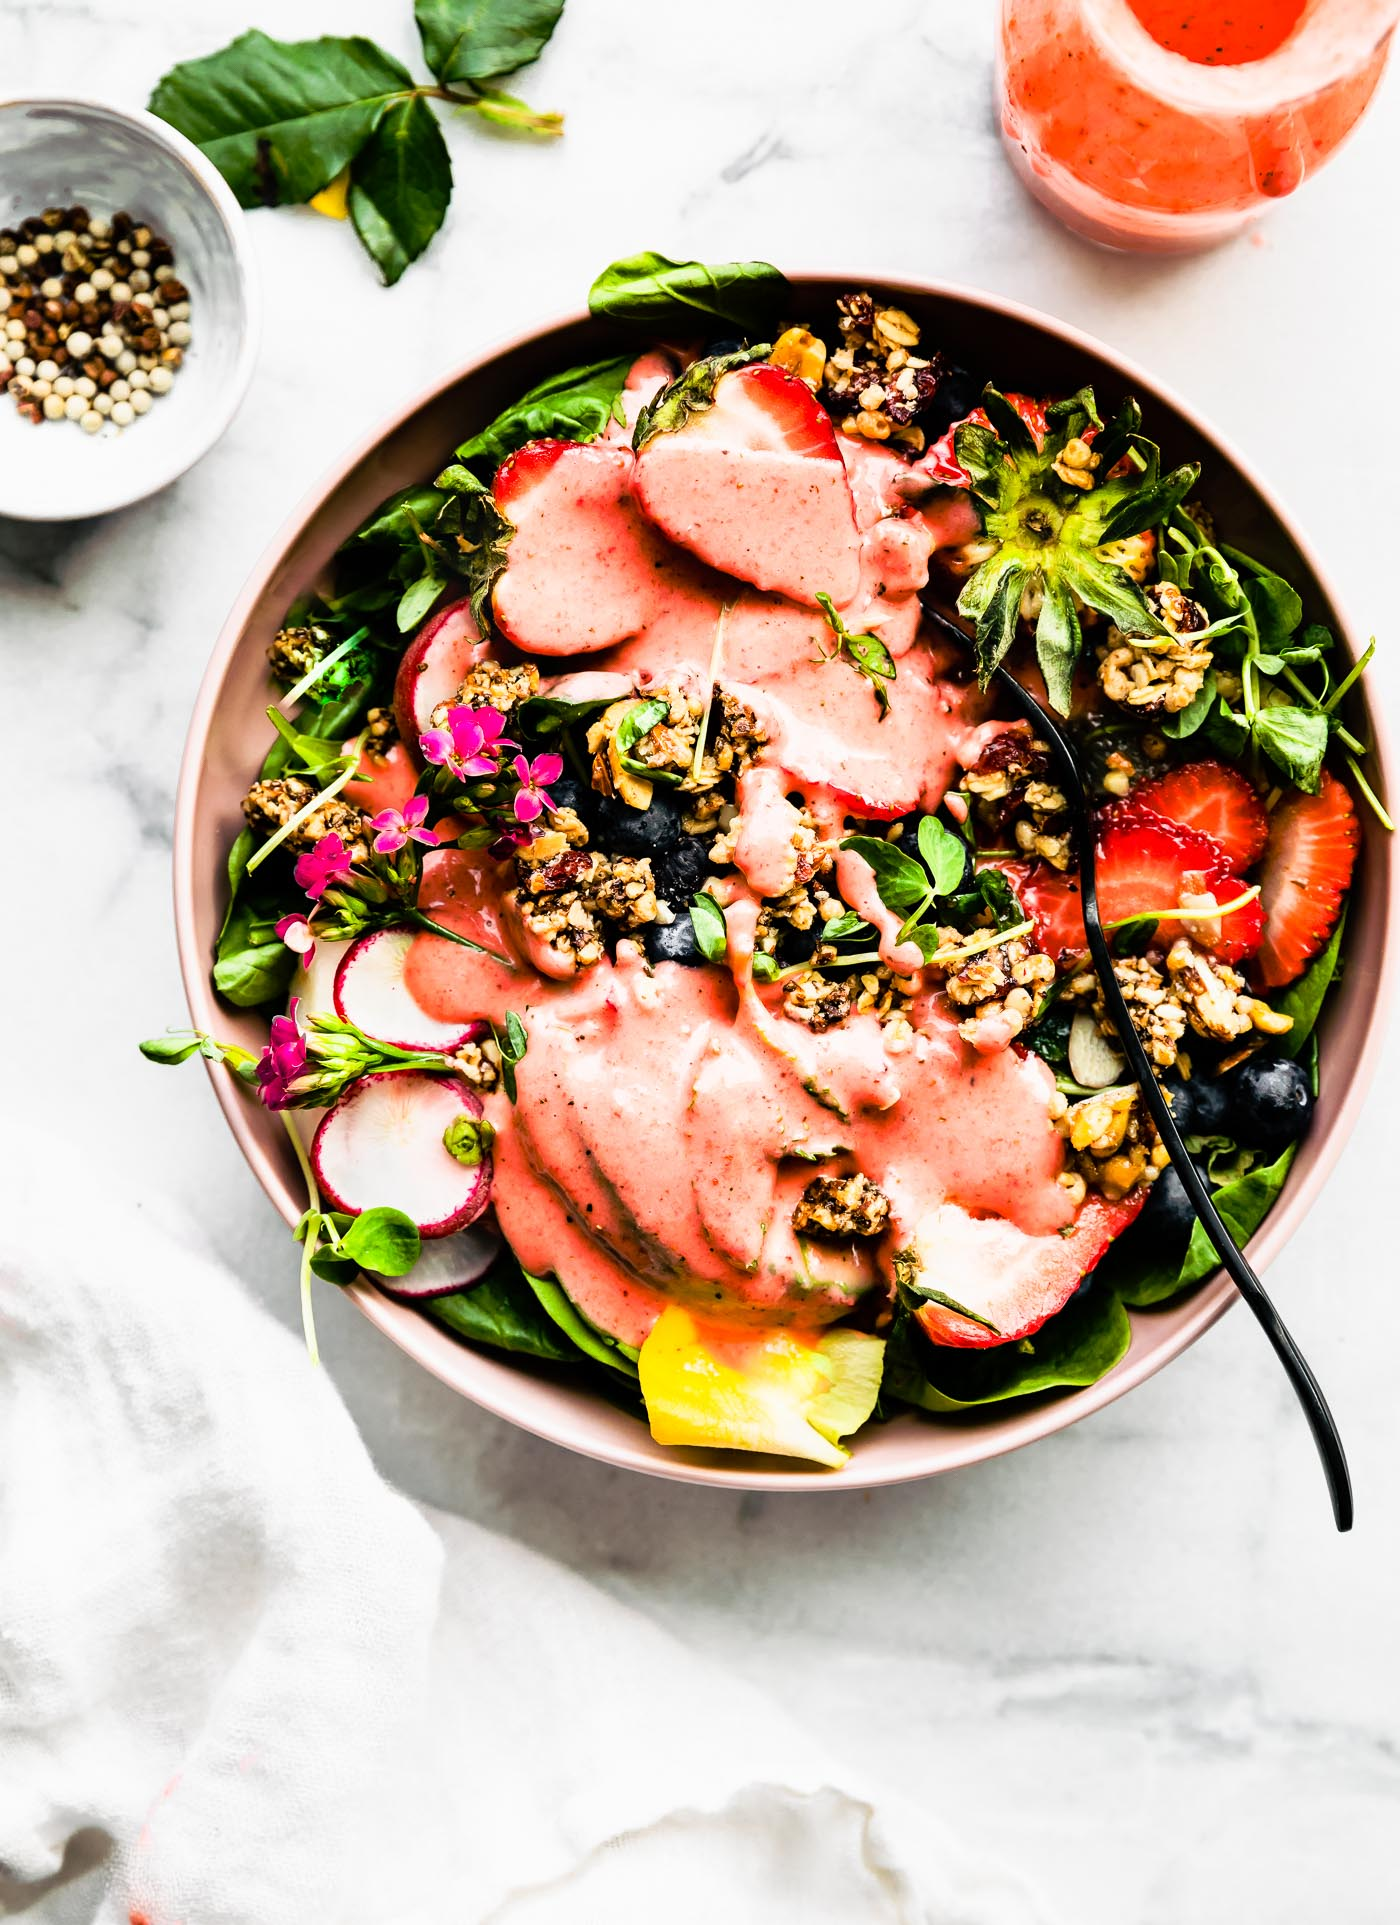 This Strawberry Spinach Salad with Granola Croutons